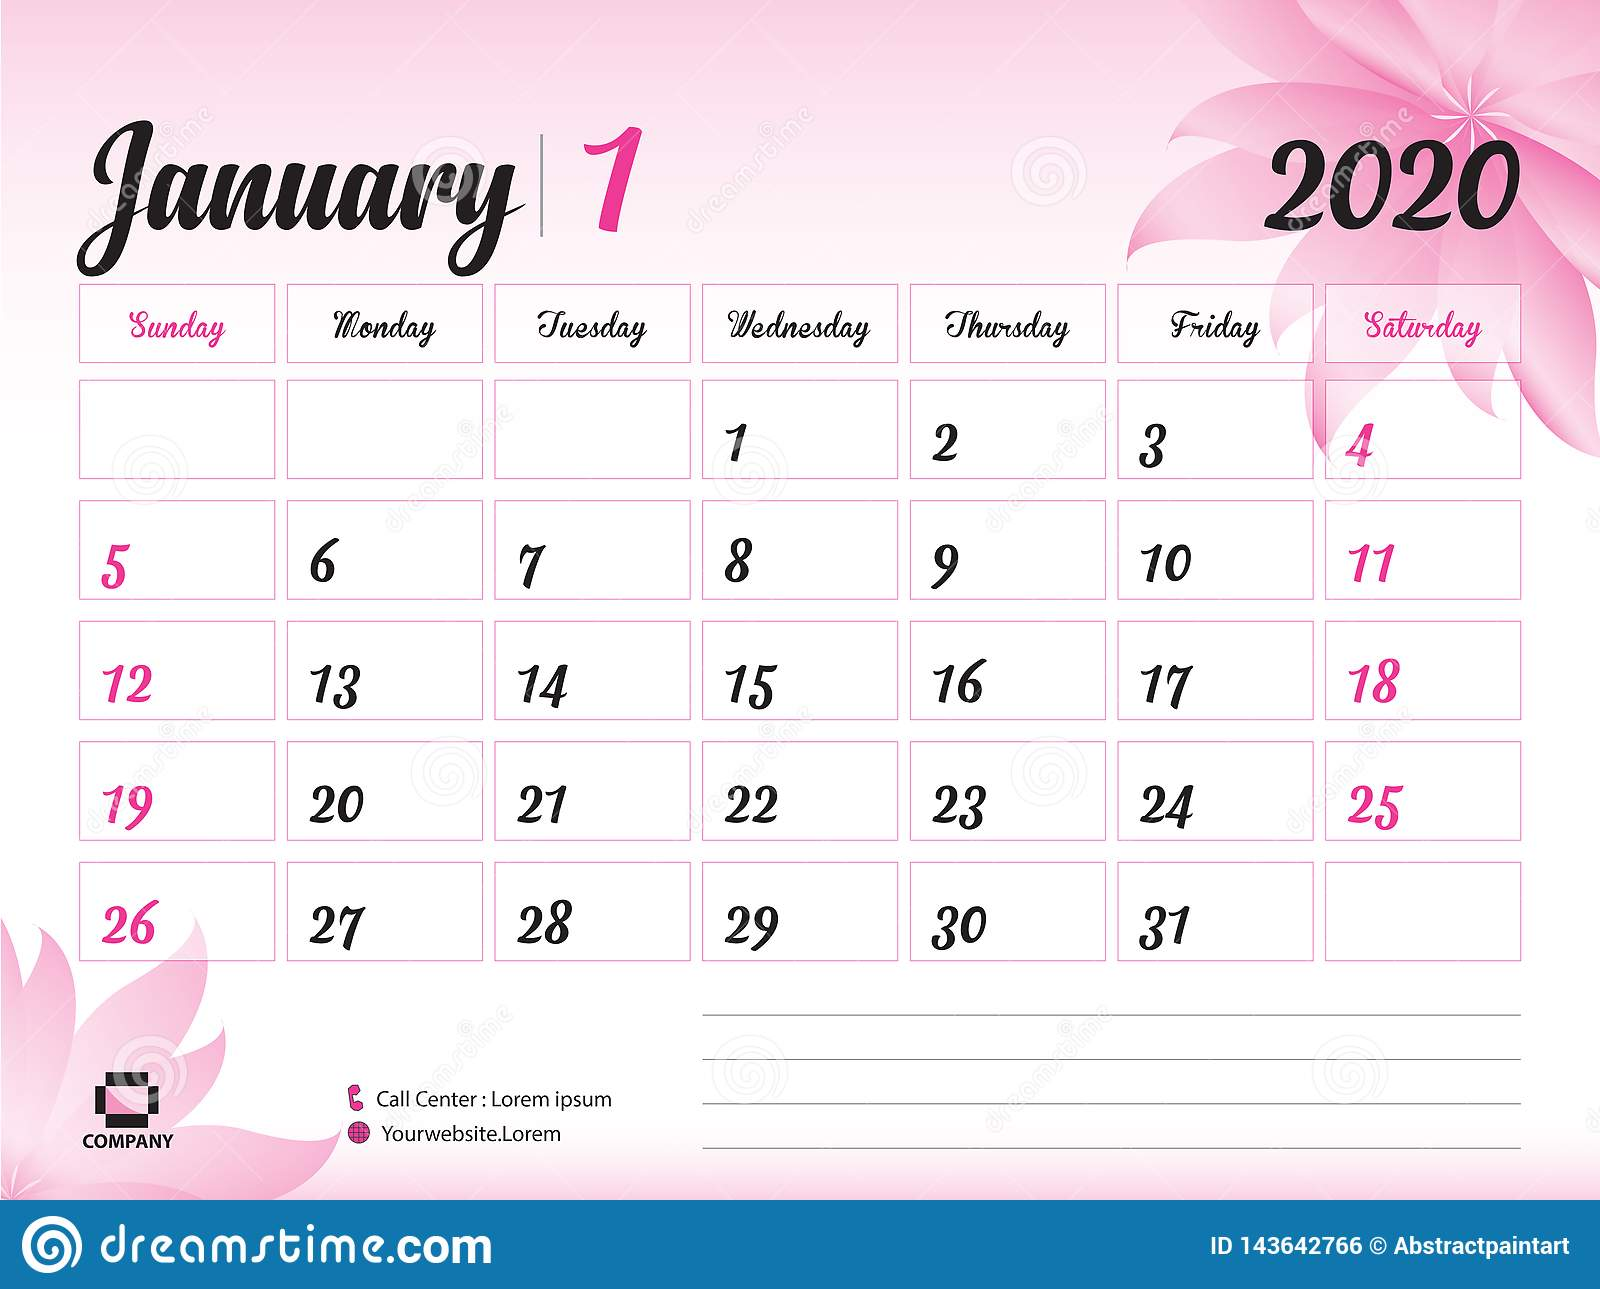 Printable Calendar 2020 January January 2020 Year Template, Calendar 2020 Vector, Desk Calendar